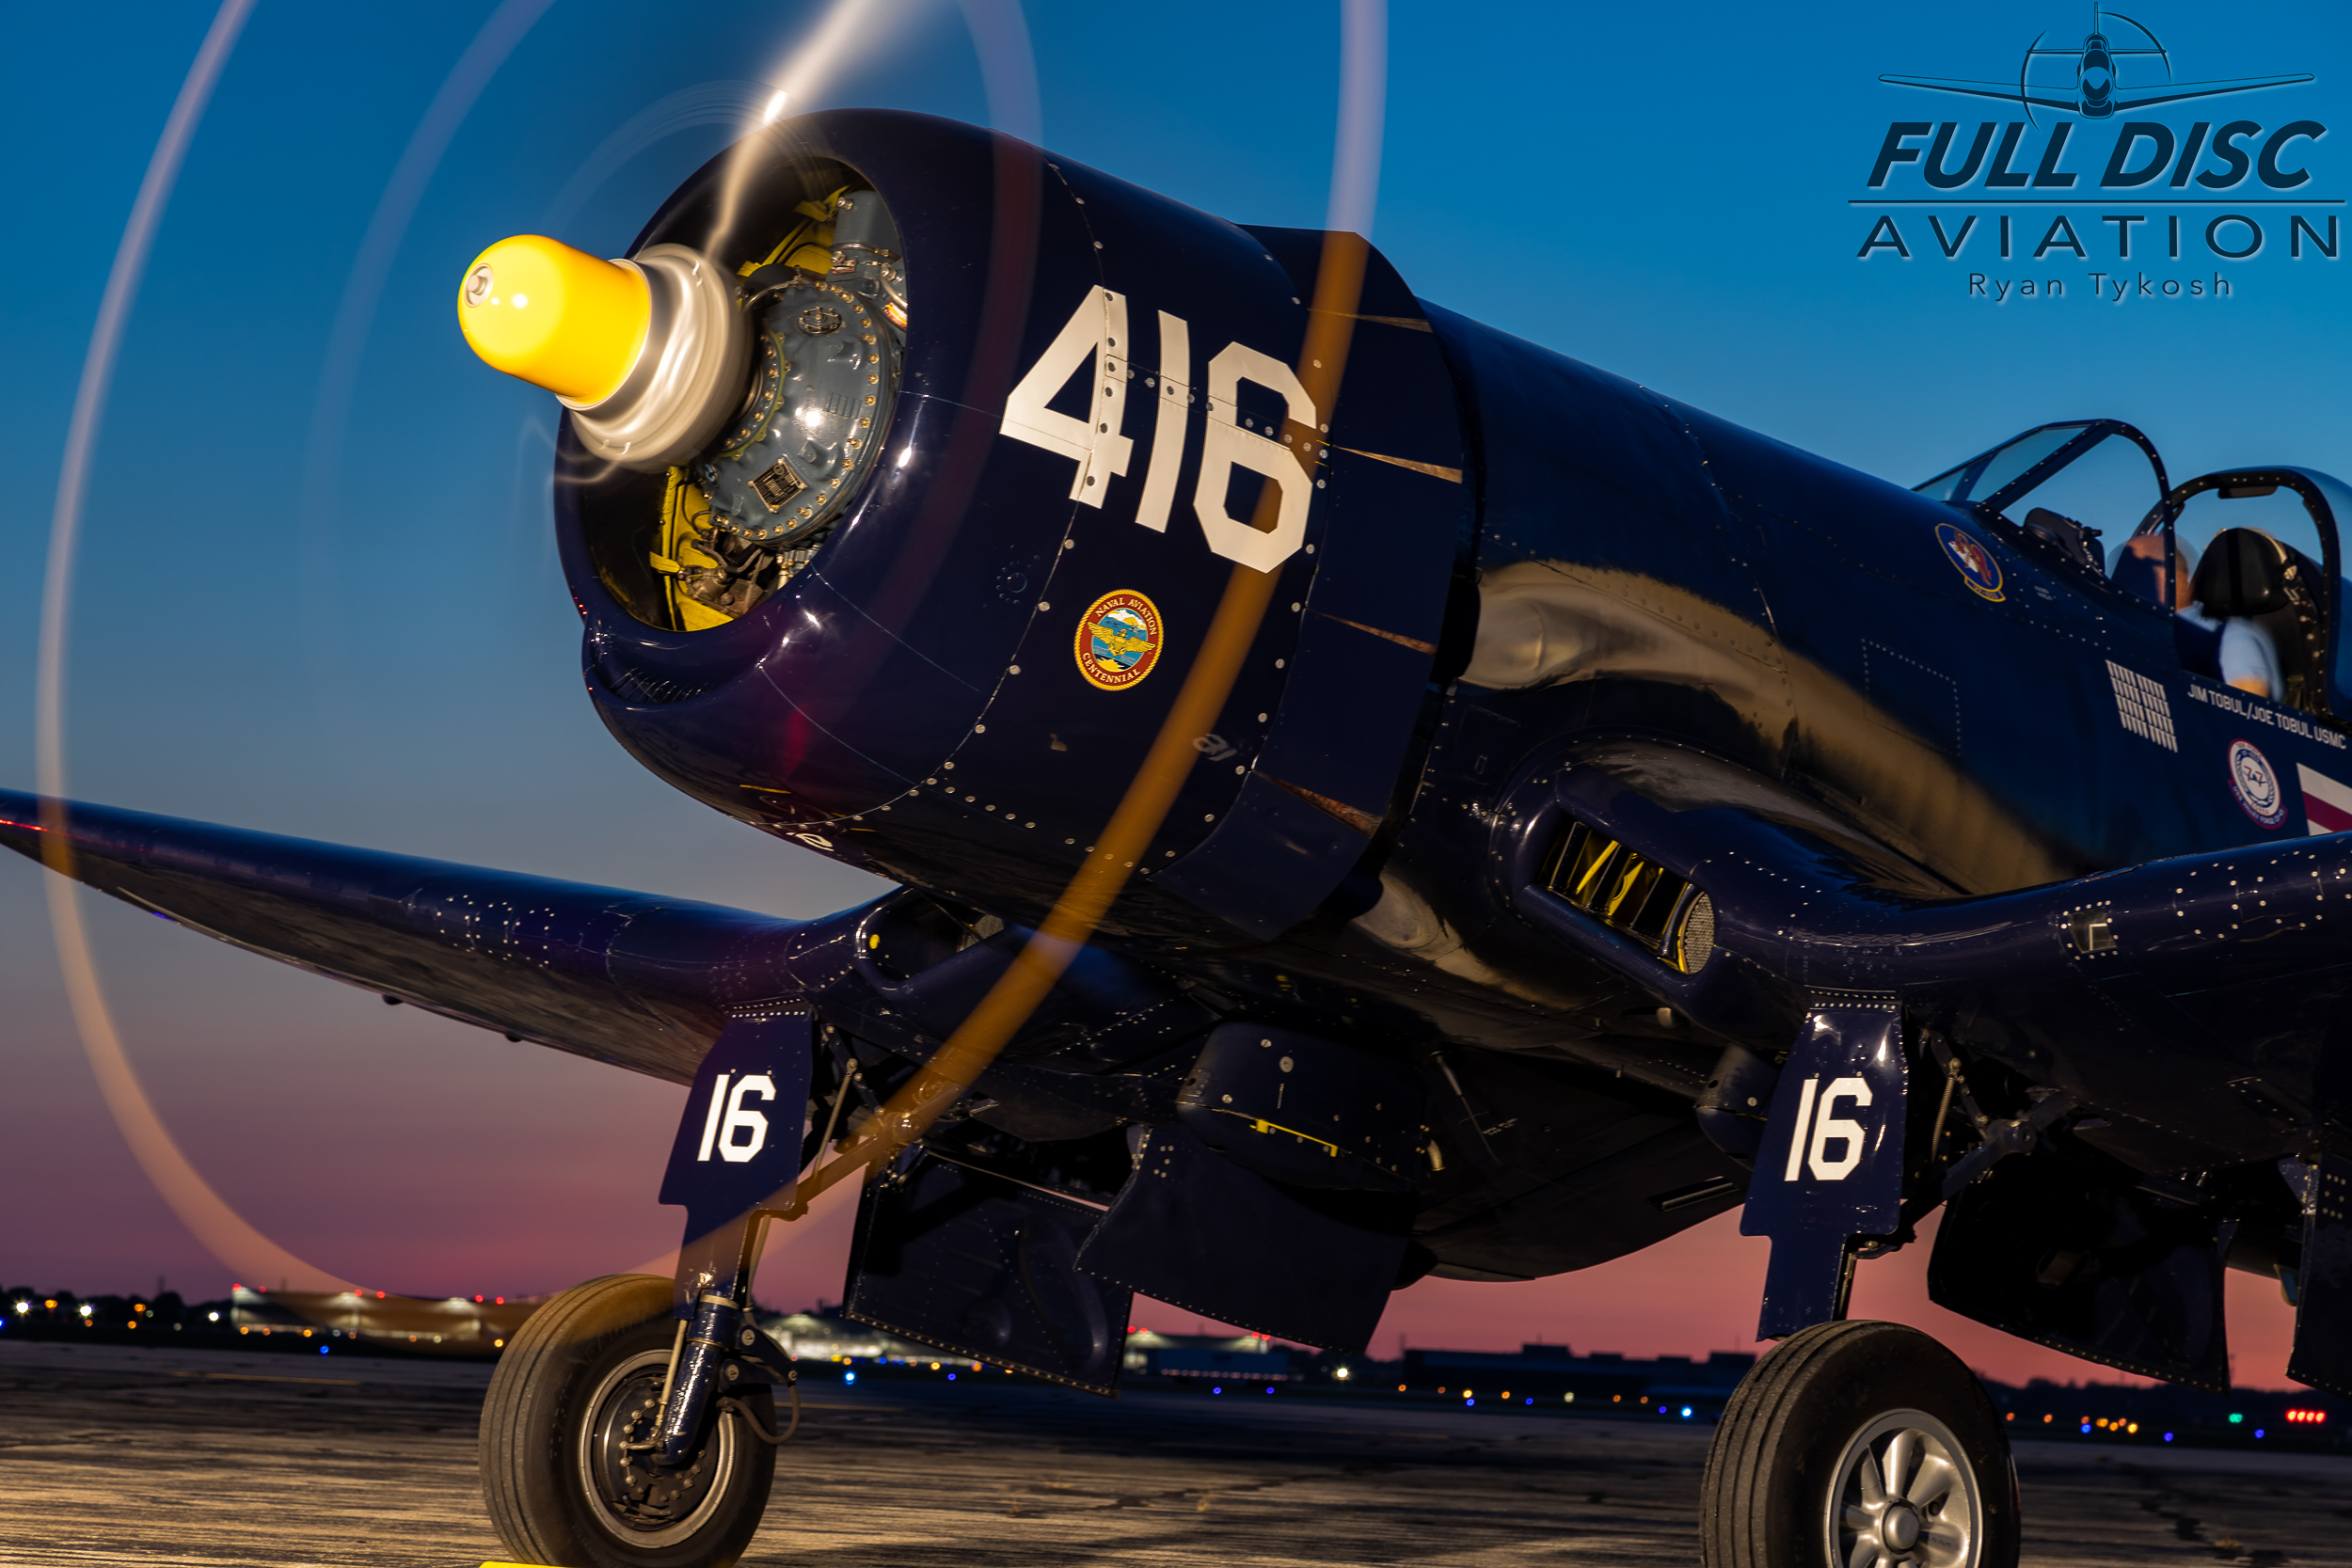 ClassOf45_FullDiscAviation_RyanTykosh_August 01, 2019_07.jpg